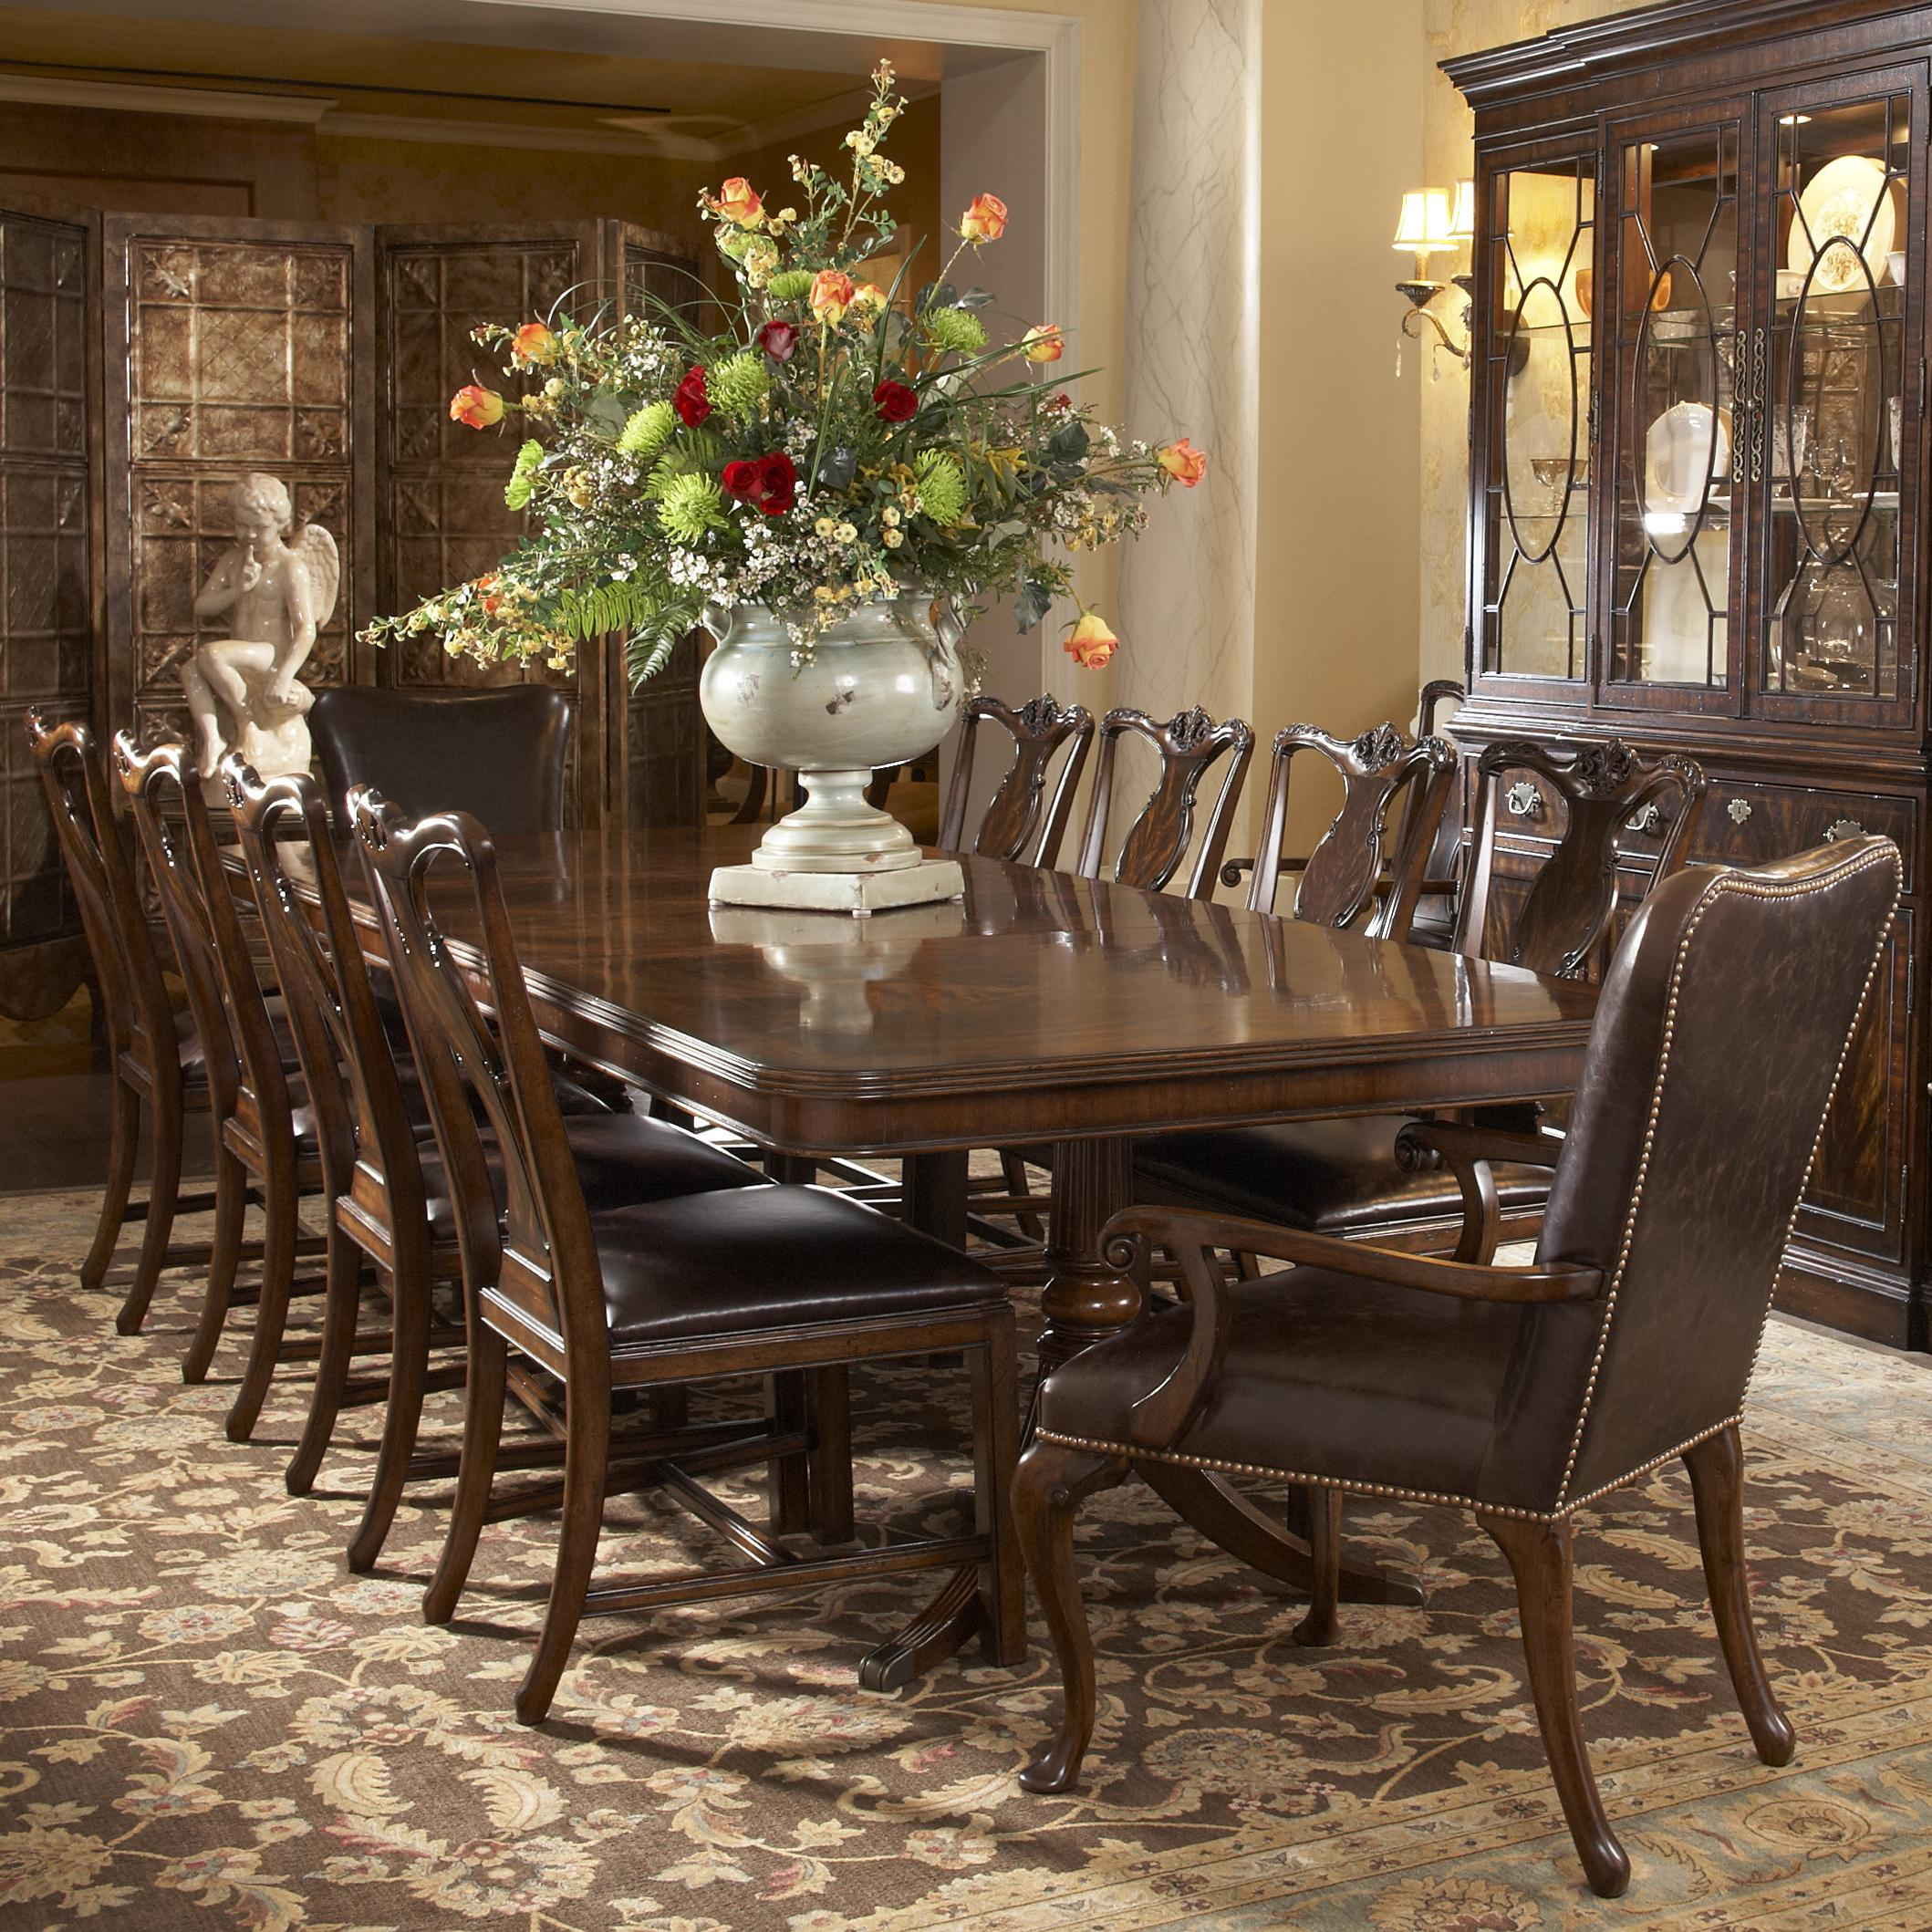 26 Big Small Dining Room Sets With Bench Seating: 11 Piece Dining Room Set